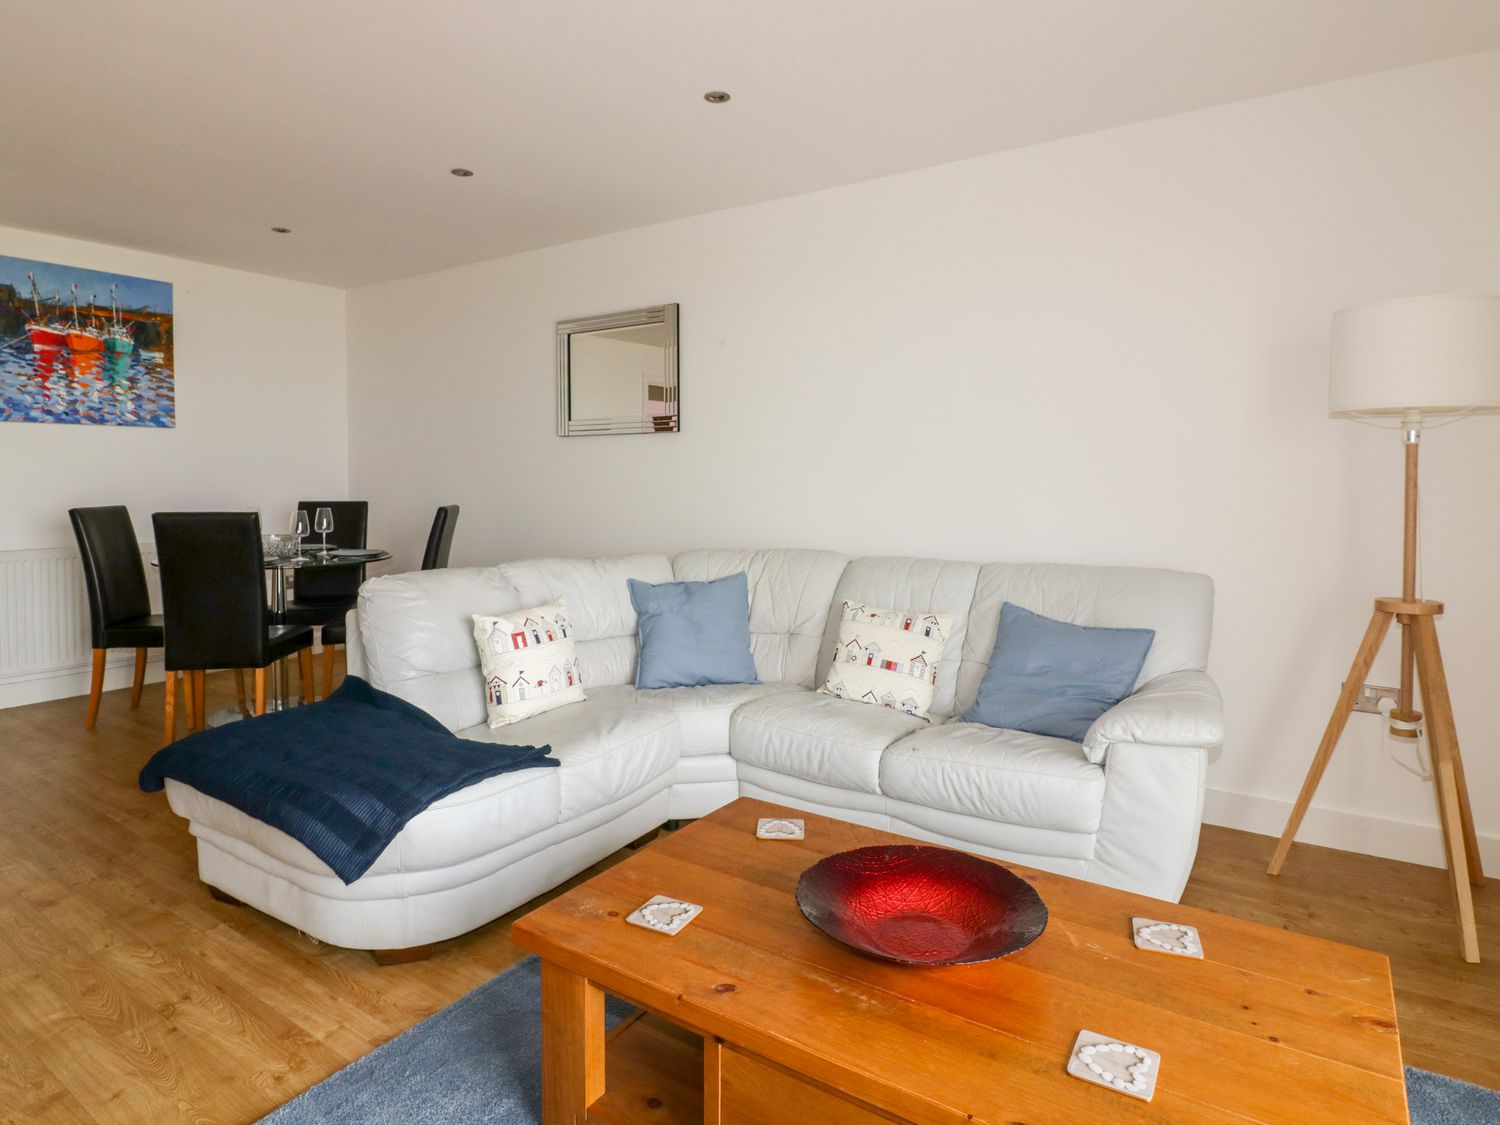 Whitewater in Newquay - sleeps 4 people